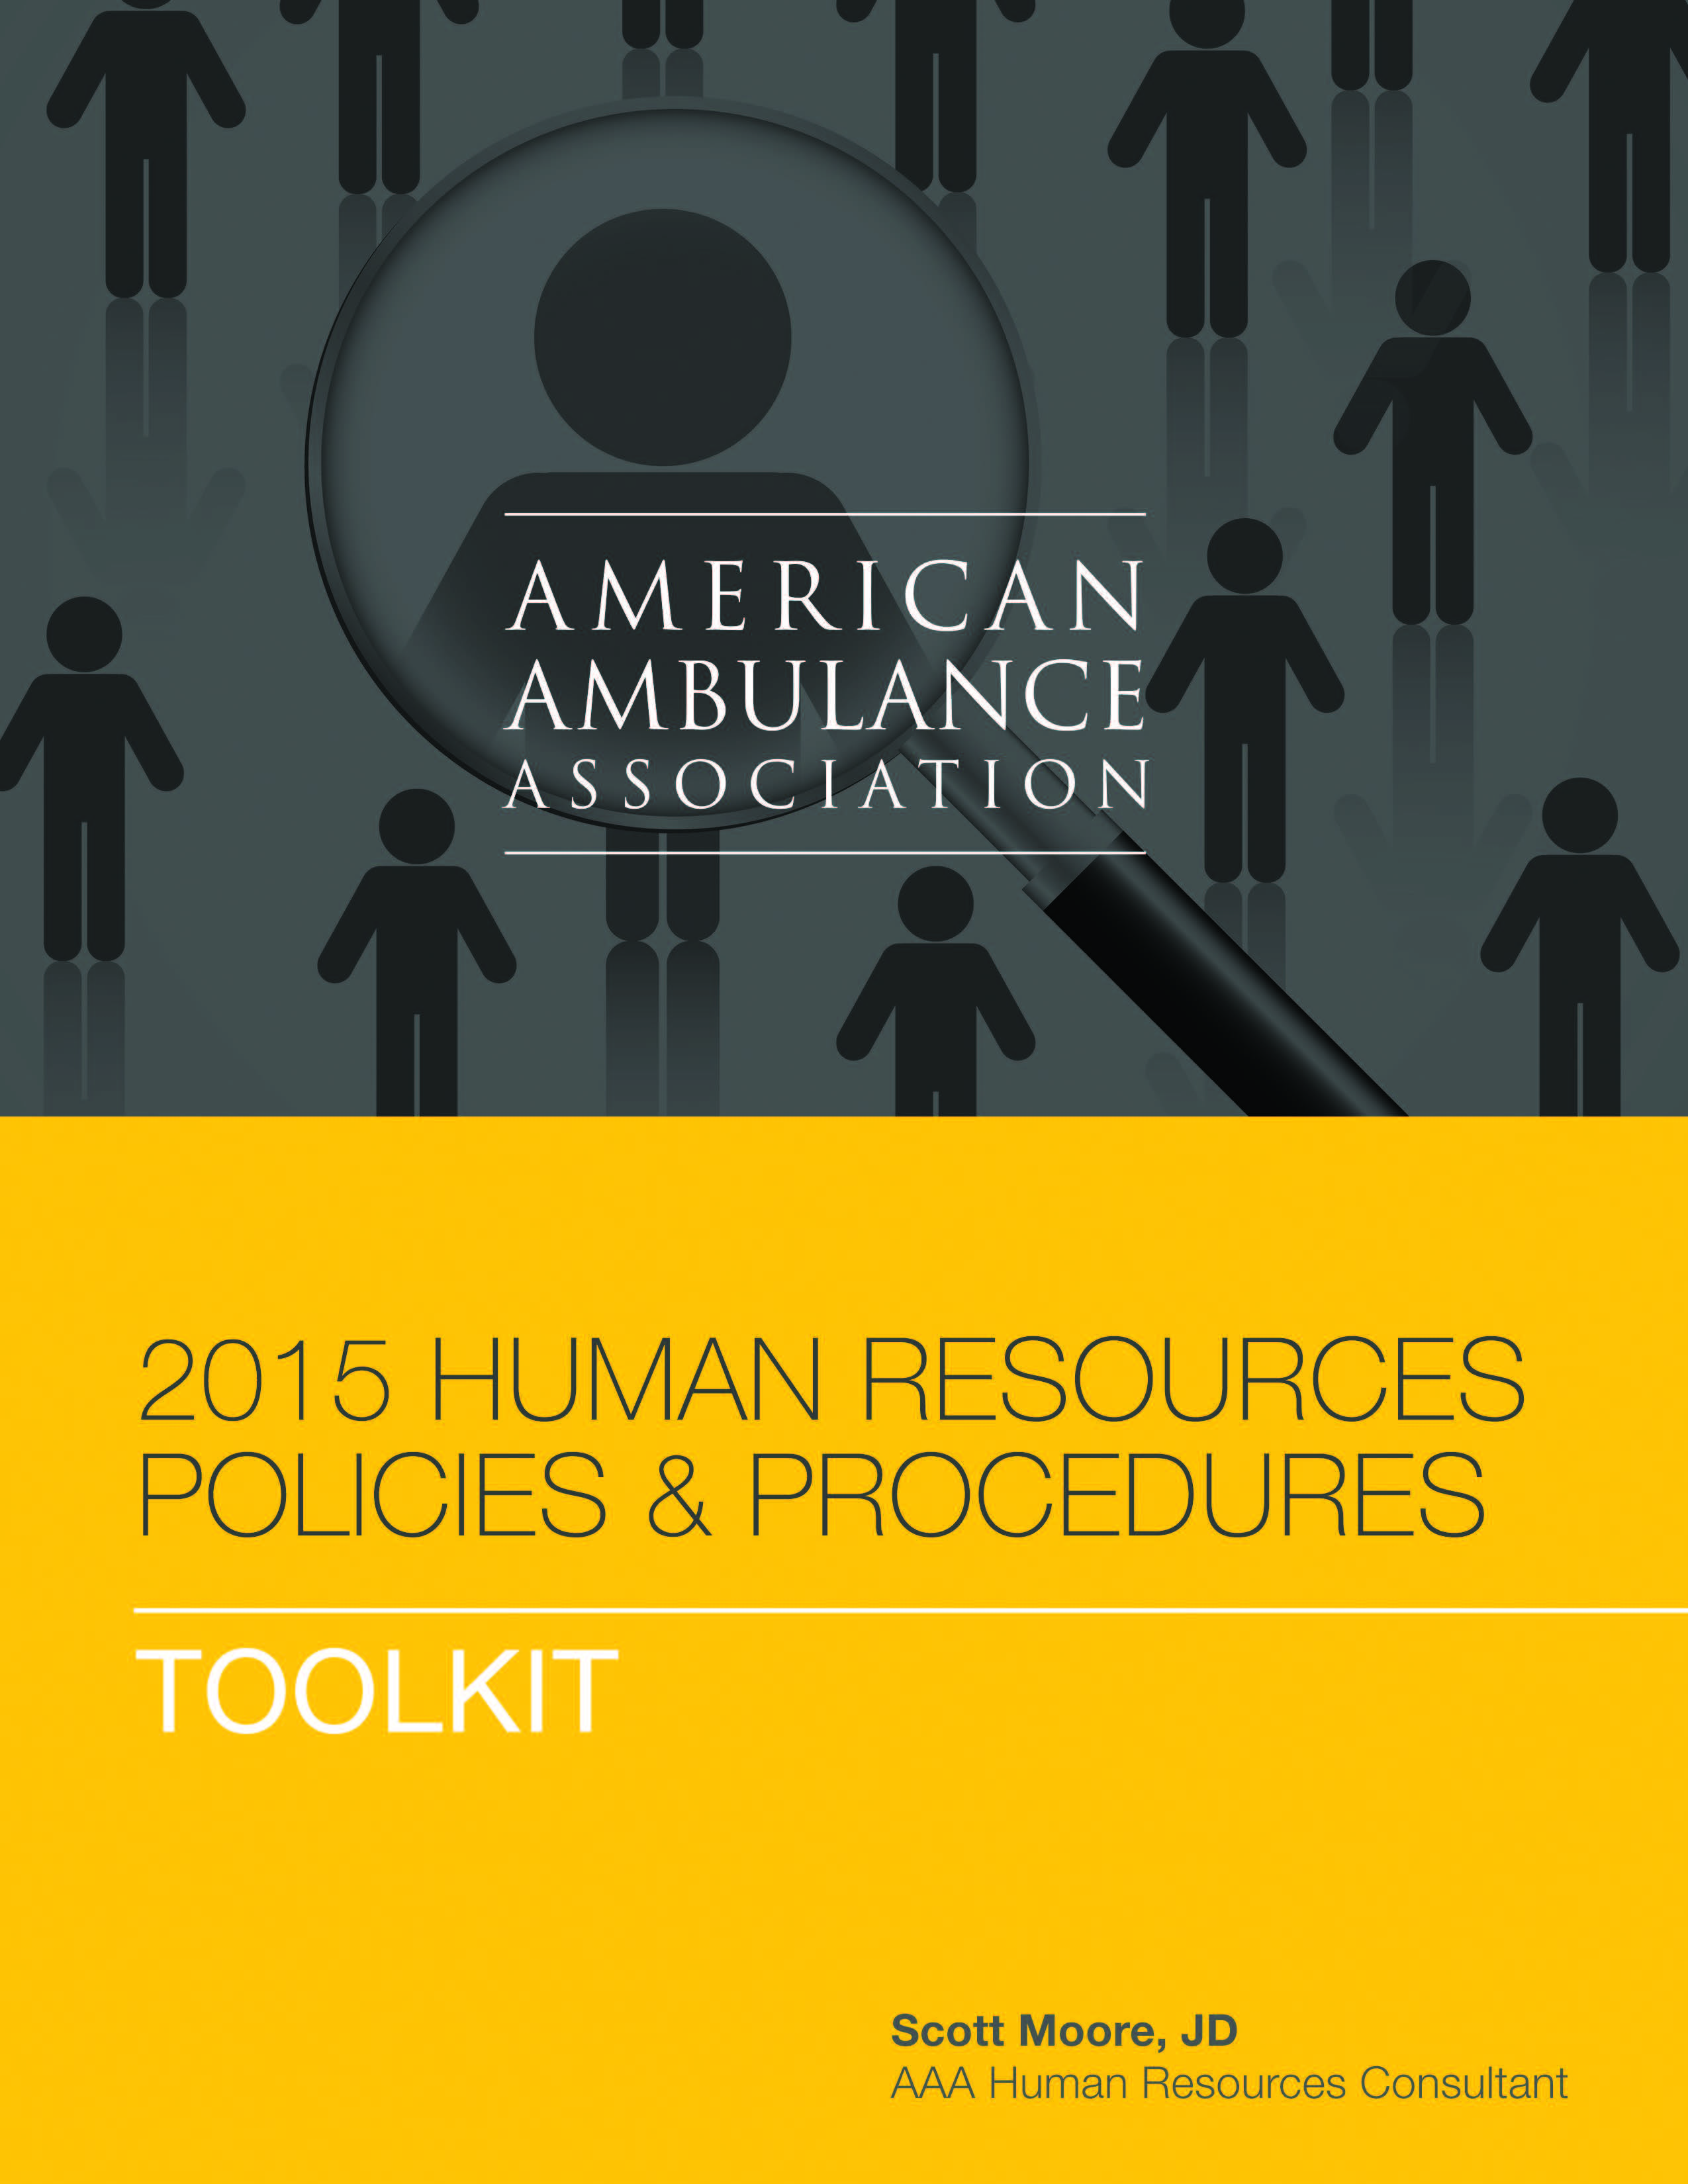 Human resources toolkit forms american ambulance association aaa human resources manual cover falaconquin